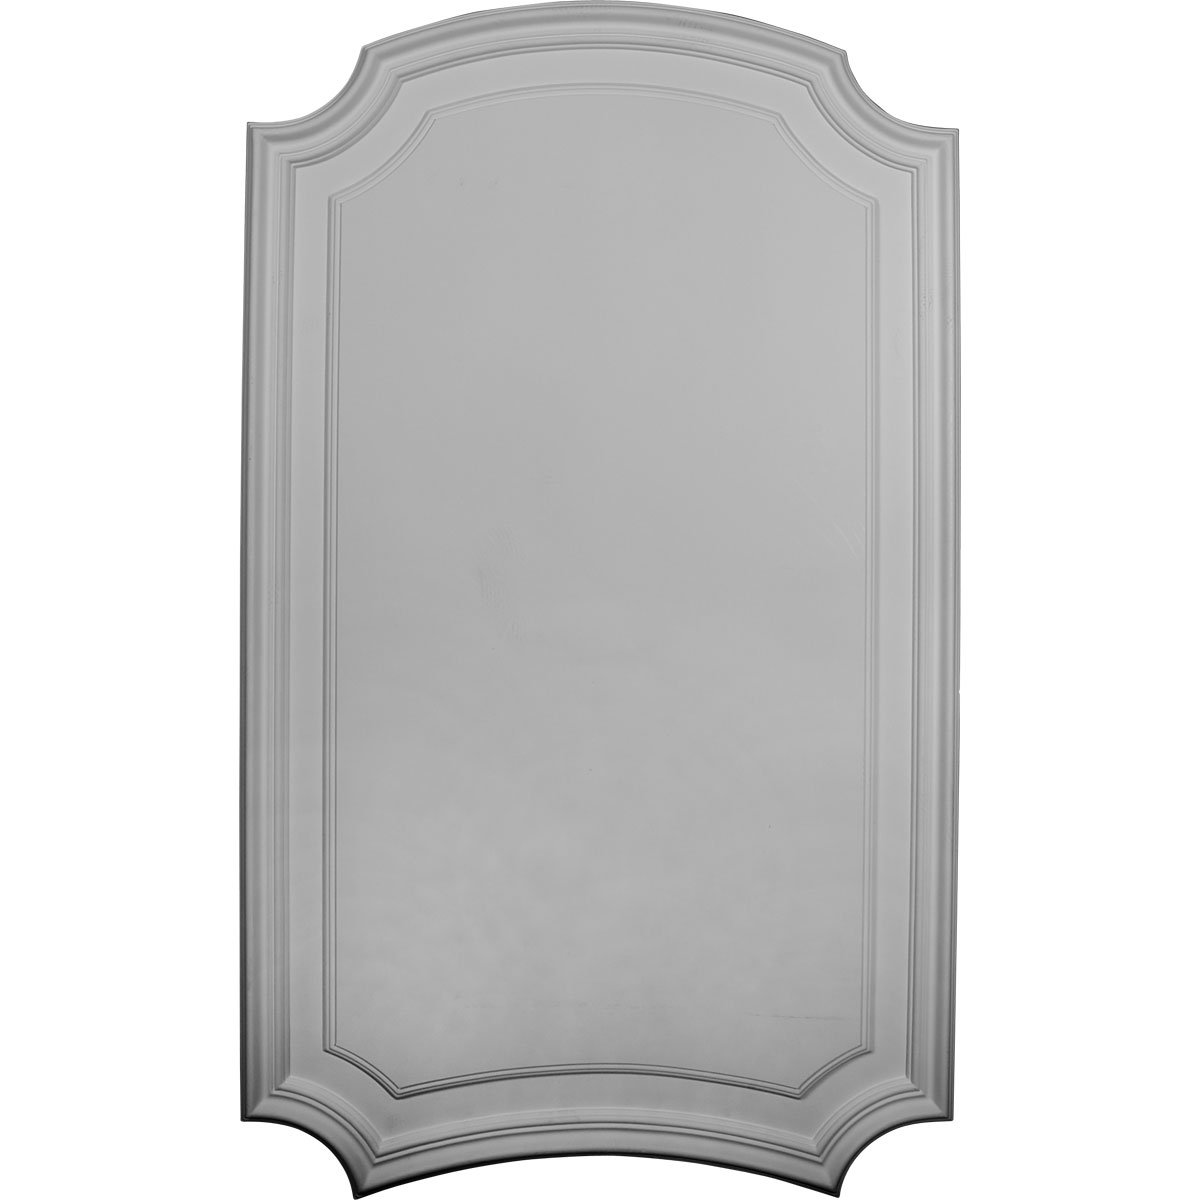 Ekena Millwork PNL22X36LE-2-CASE-2 21 5/8 inch W x 36 3/8 inch H x 5/8 inch P Legacy Deluxe Arch Wall/Door Panel (2-Pack),